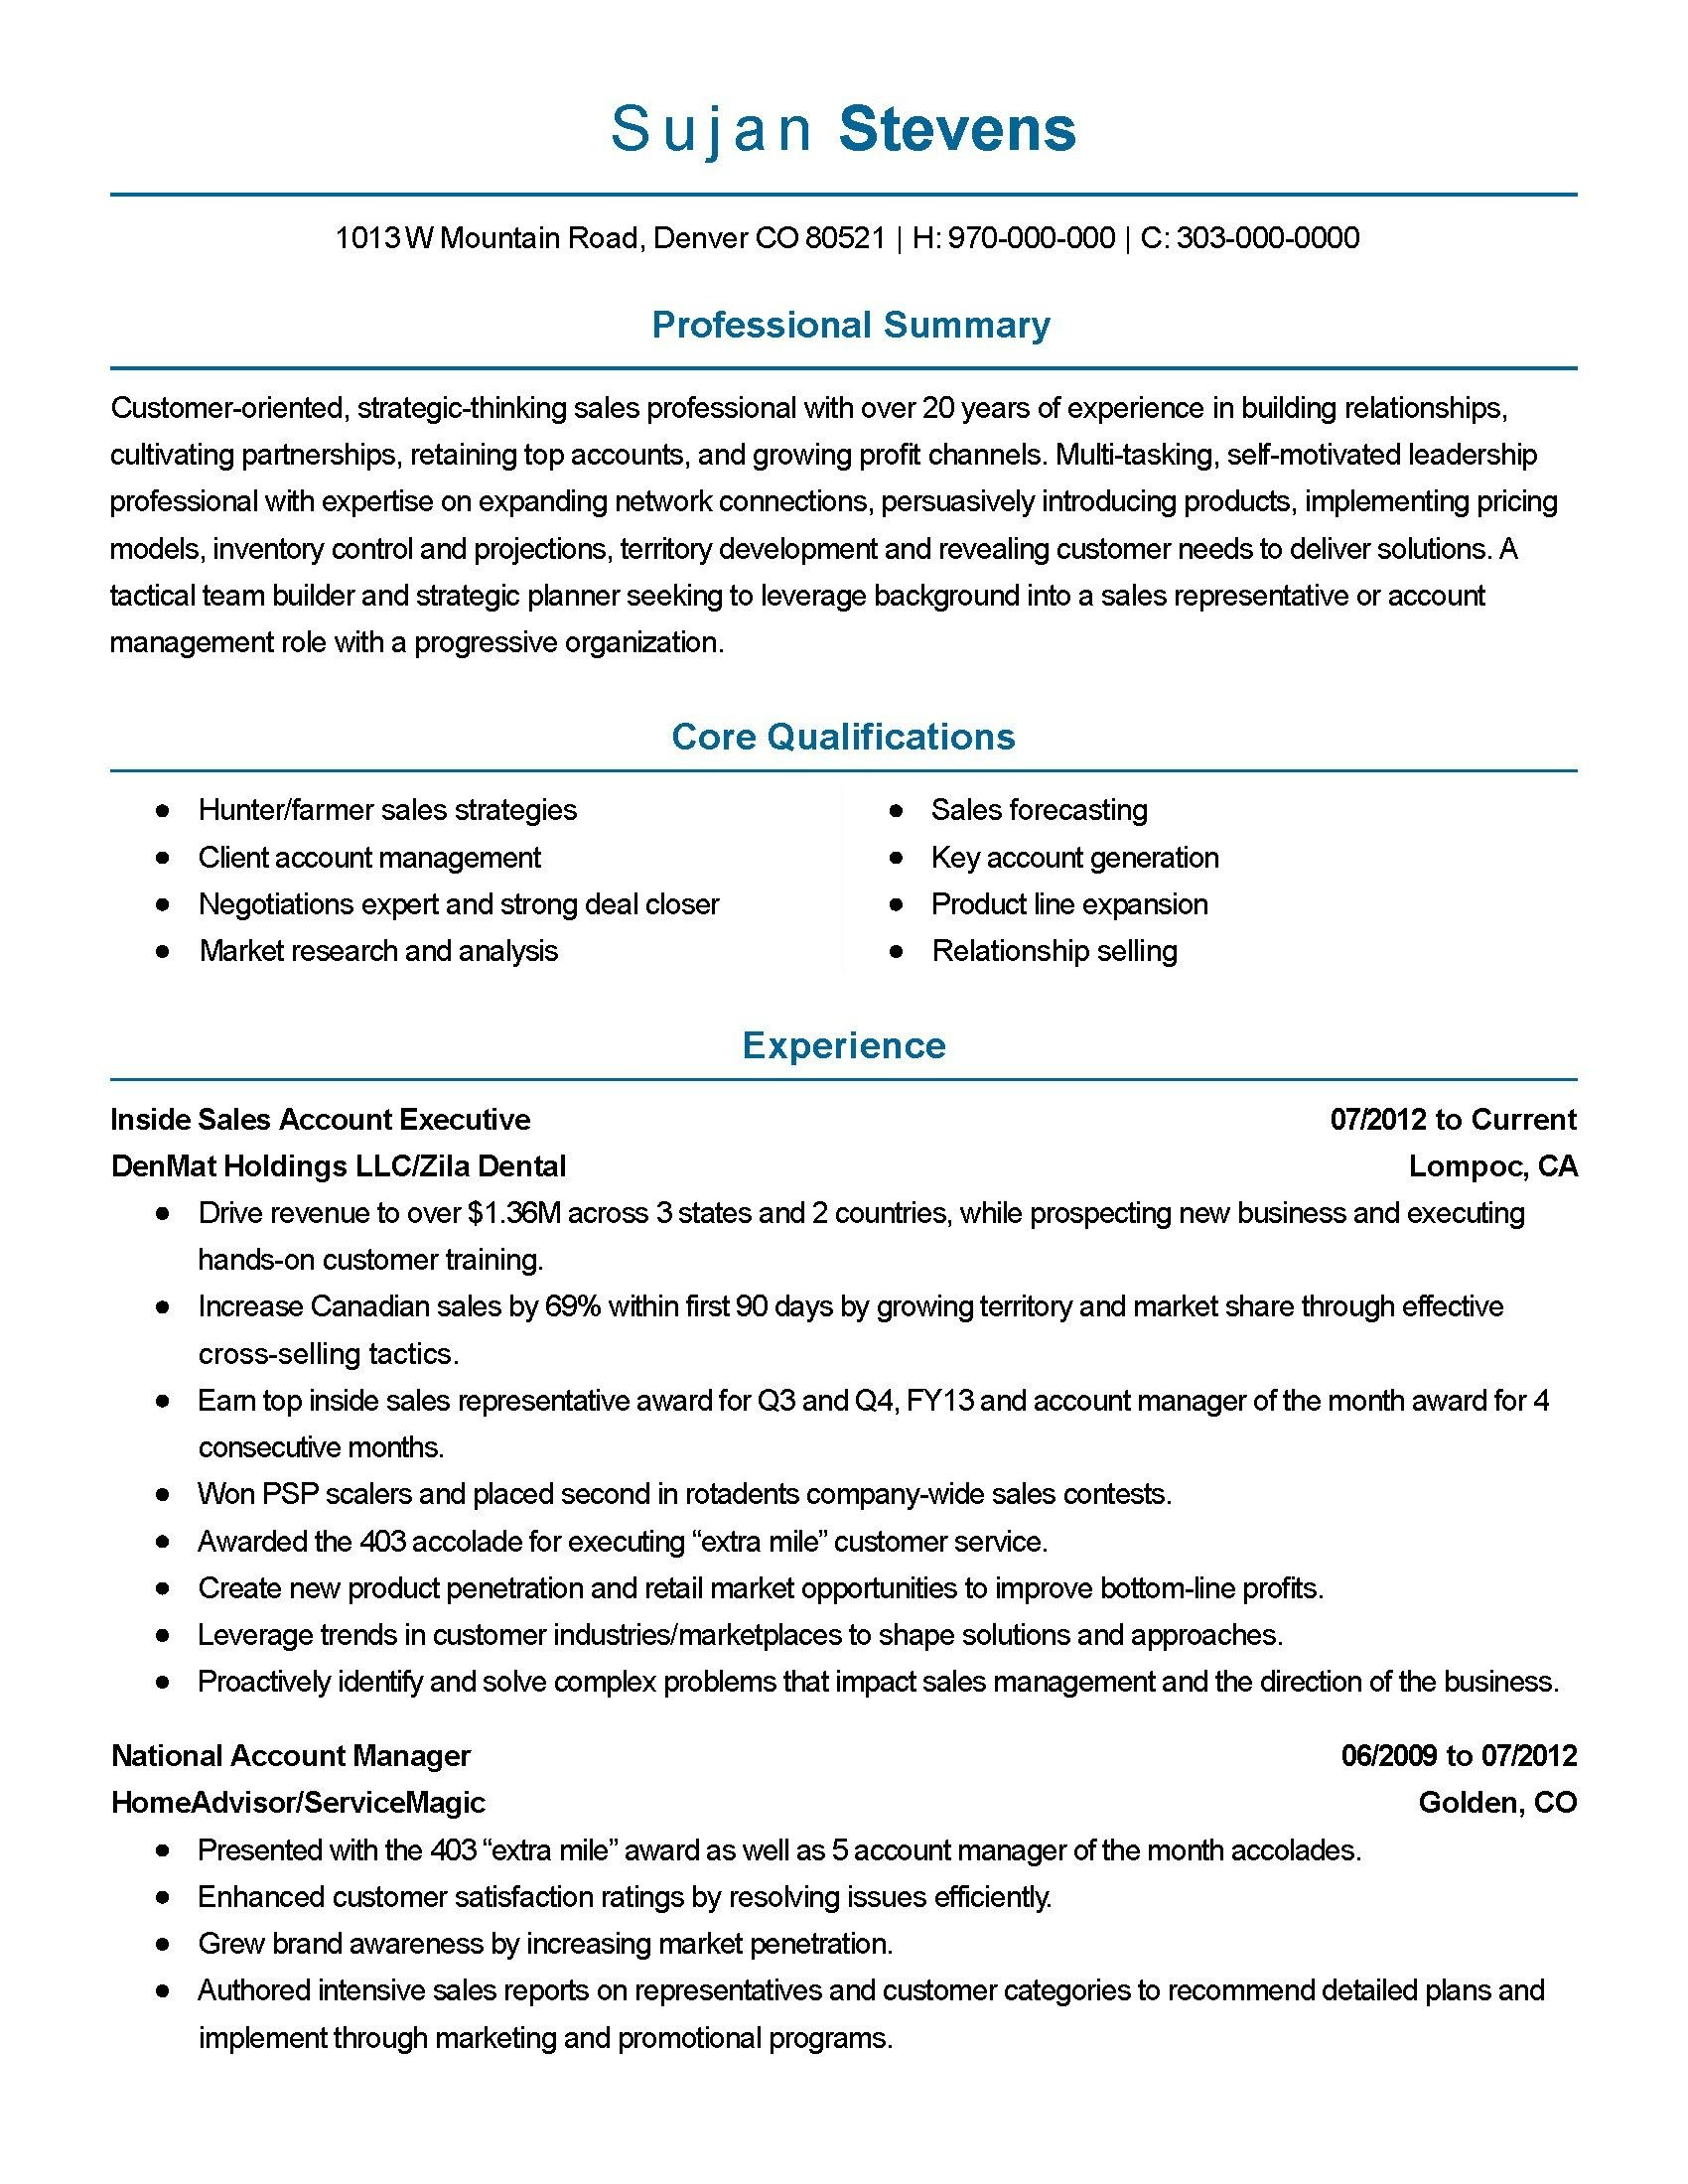 75 Luxury Image Of Resume Summary Examples For Account Manager